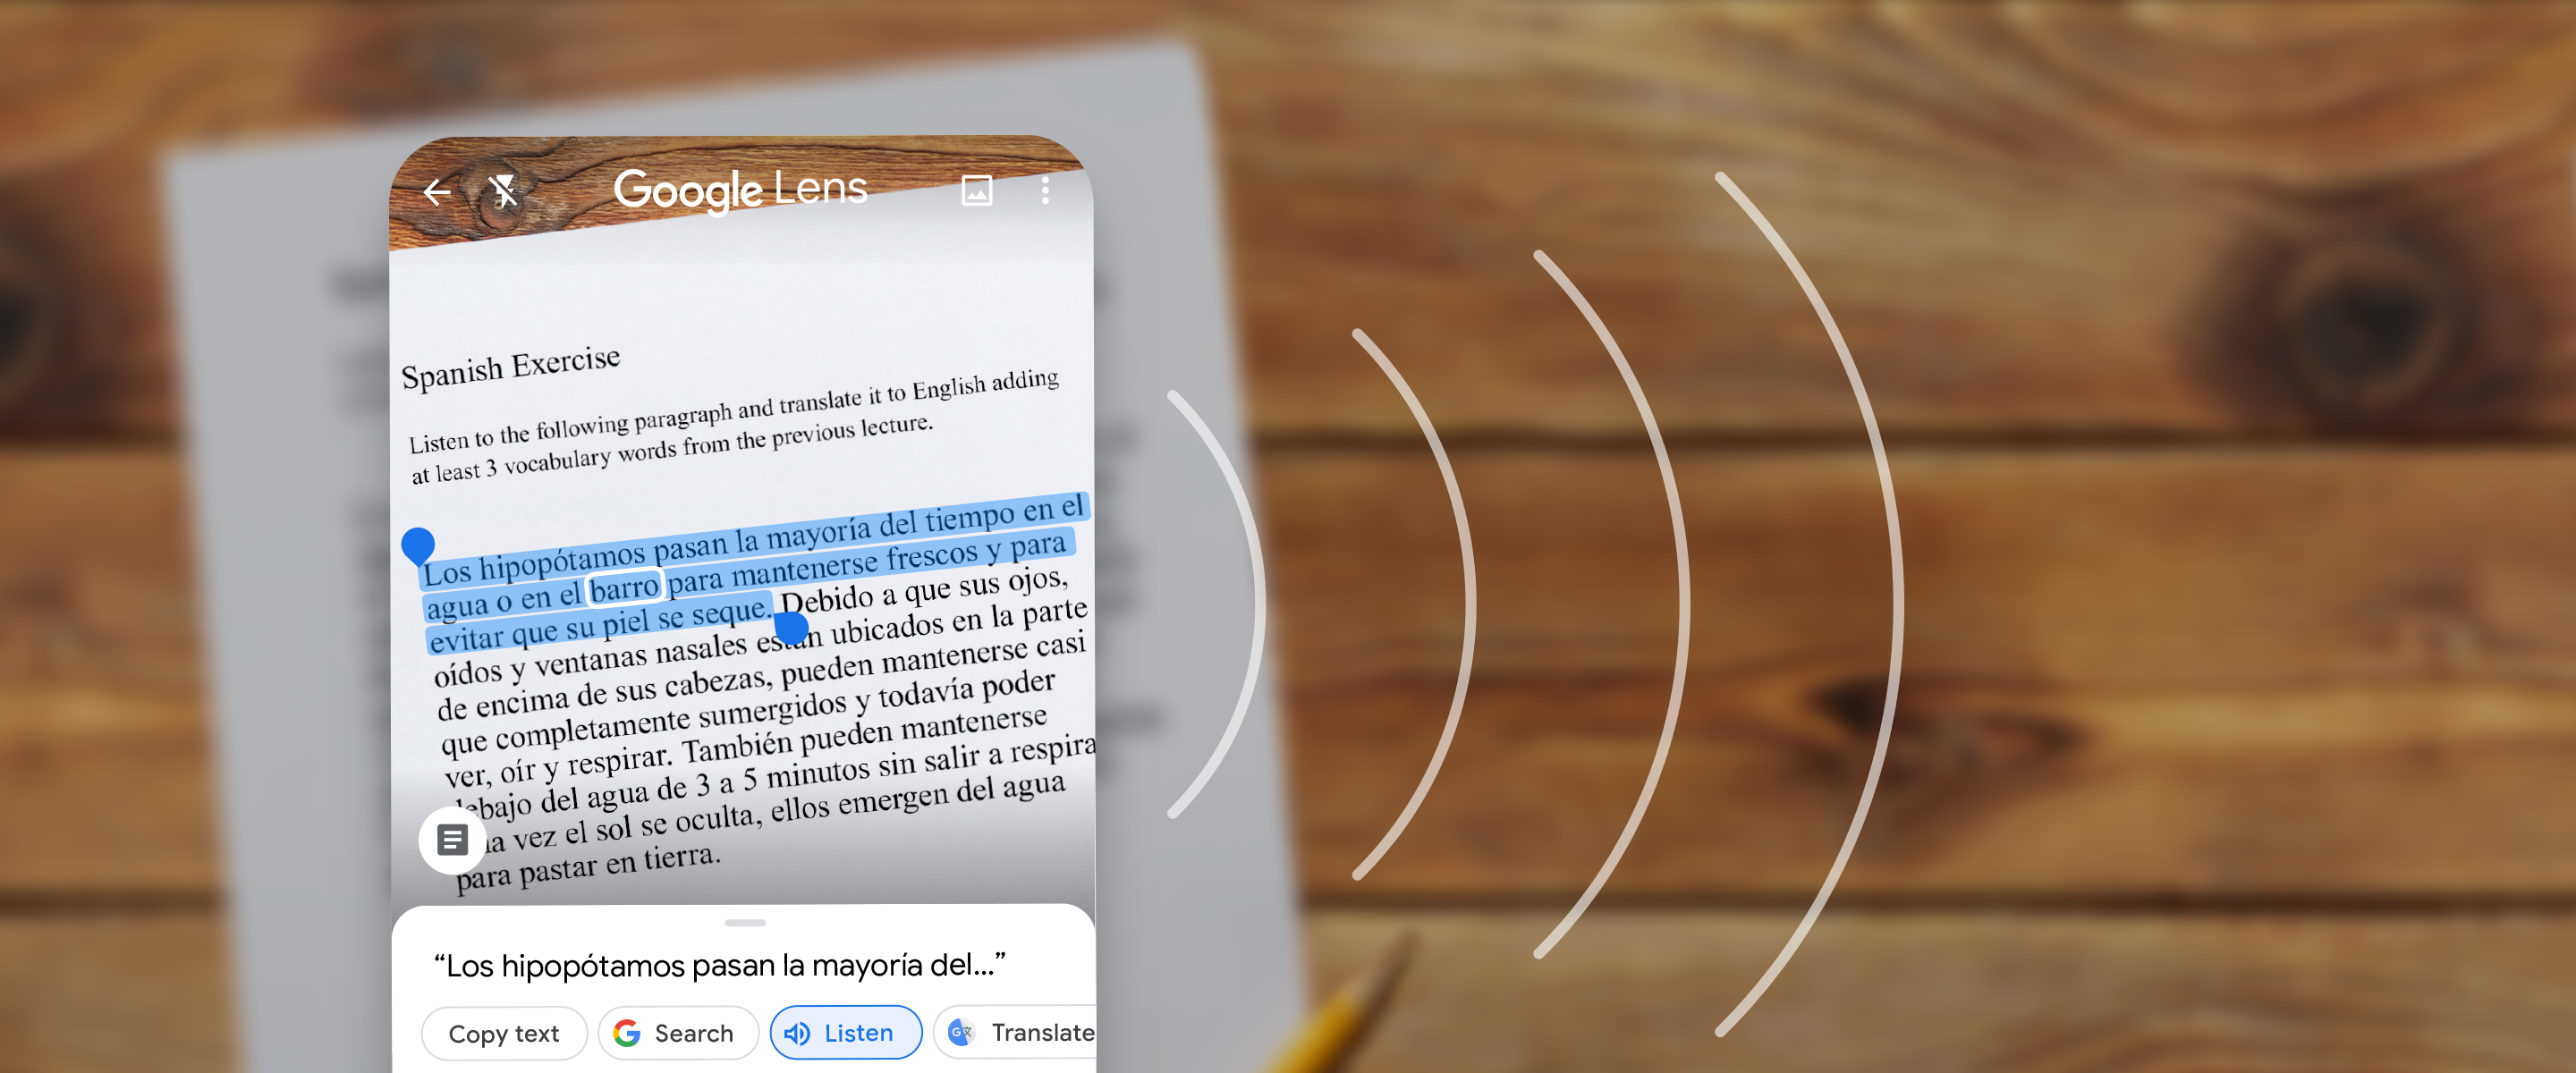 google-lens-read-out-loud-spanish.png